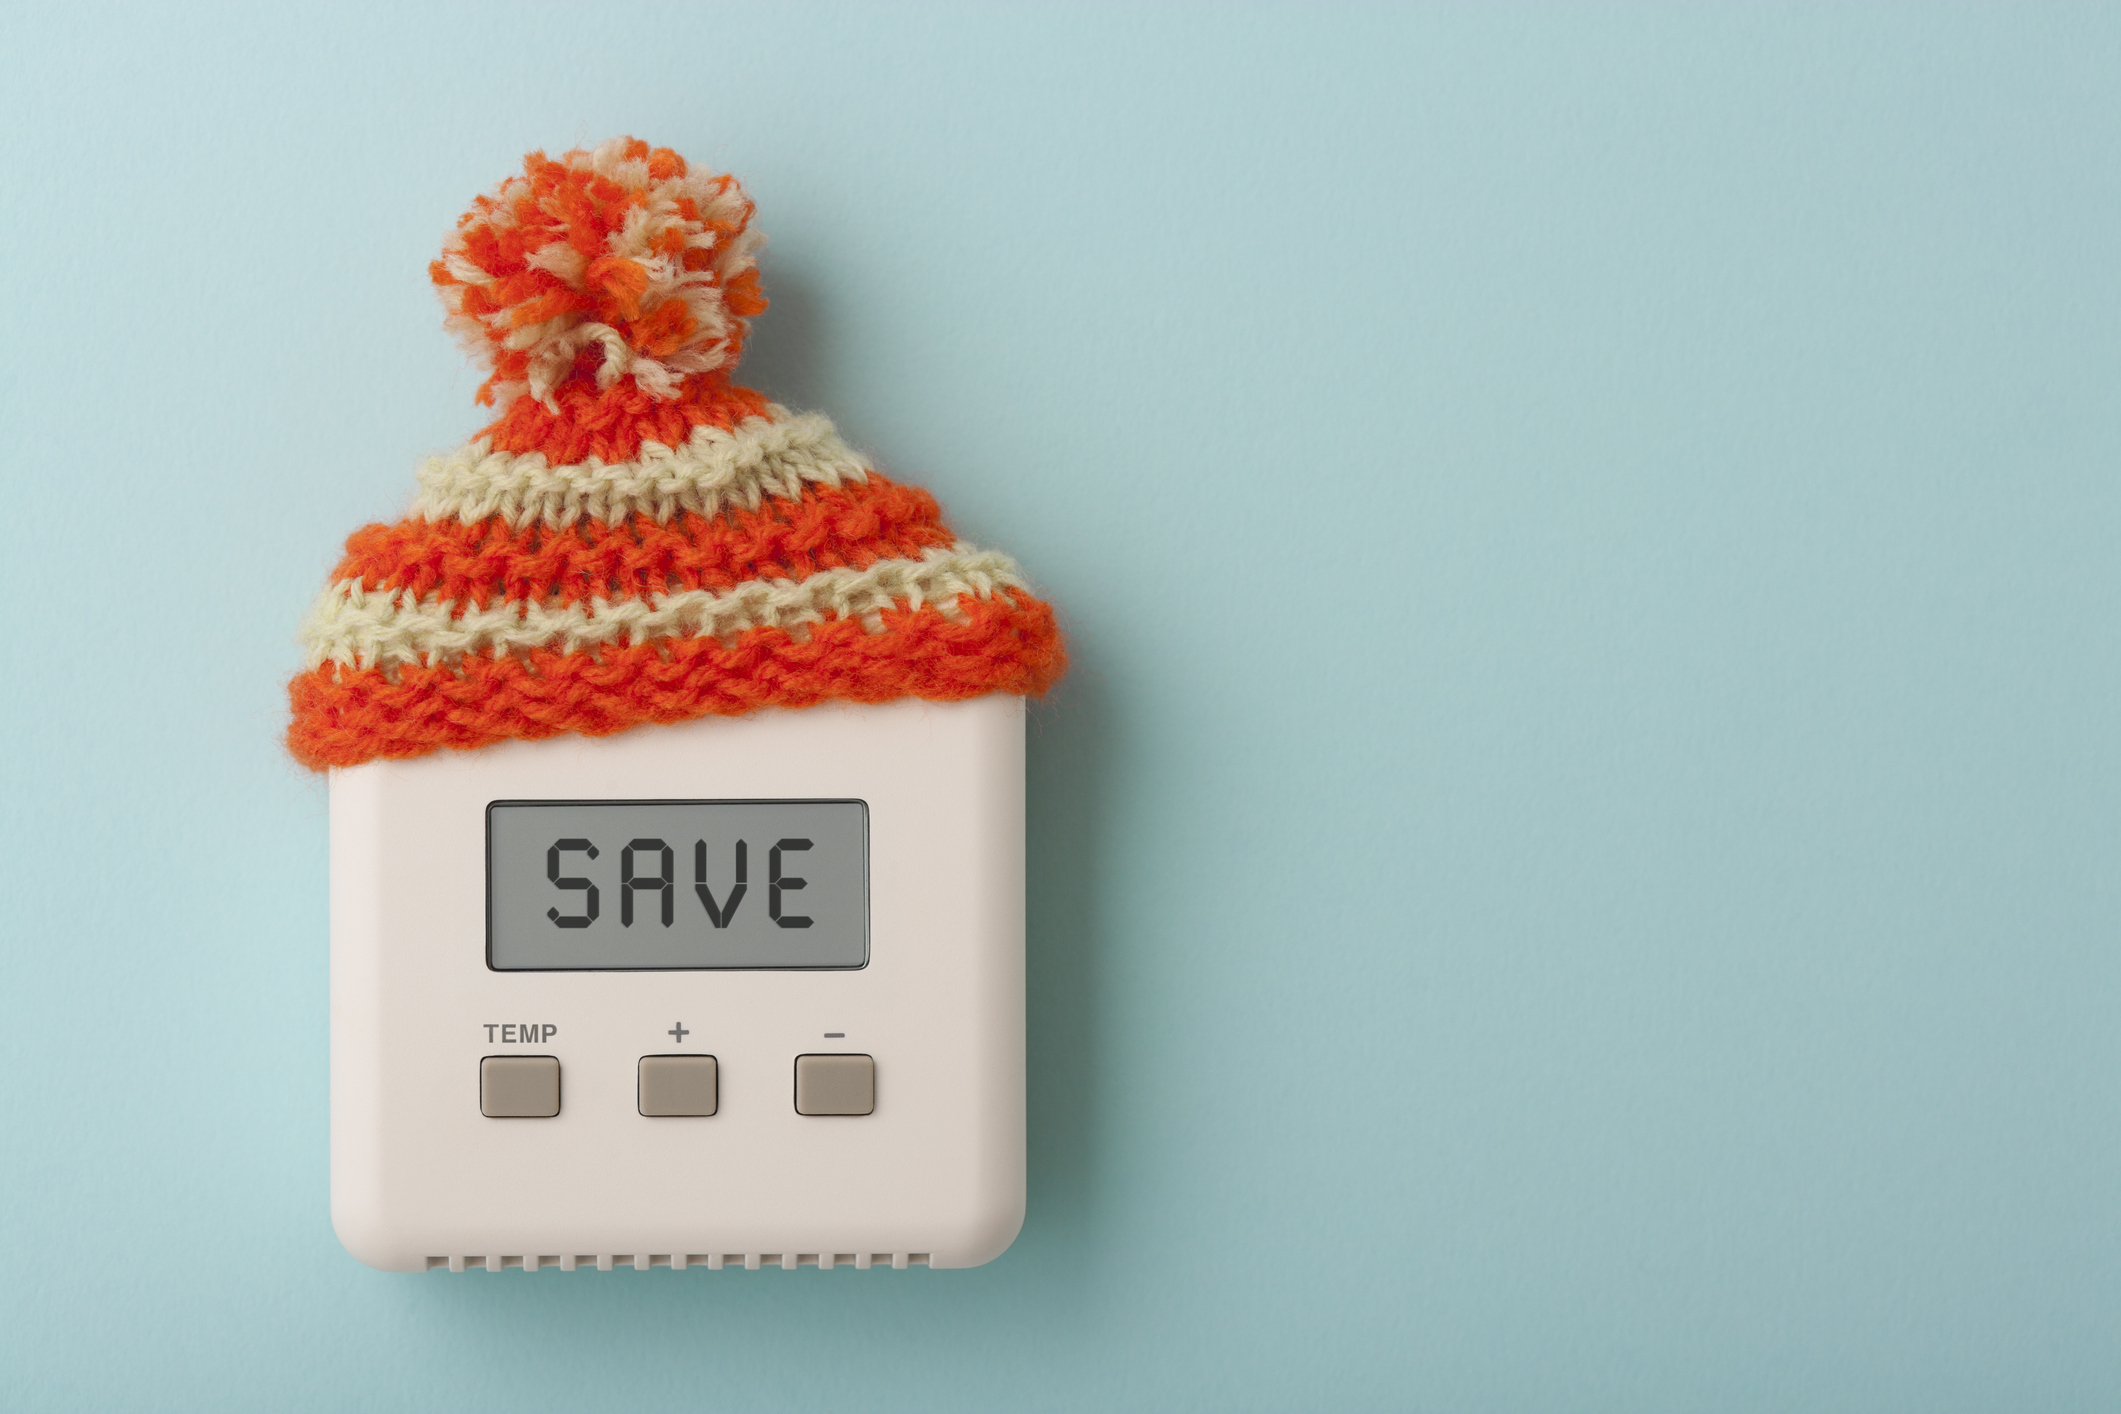 Thermostat reading save with bobble hat on